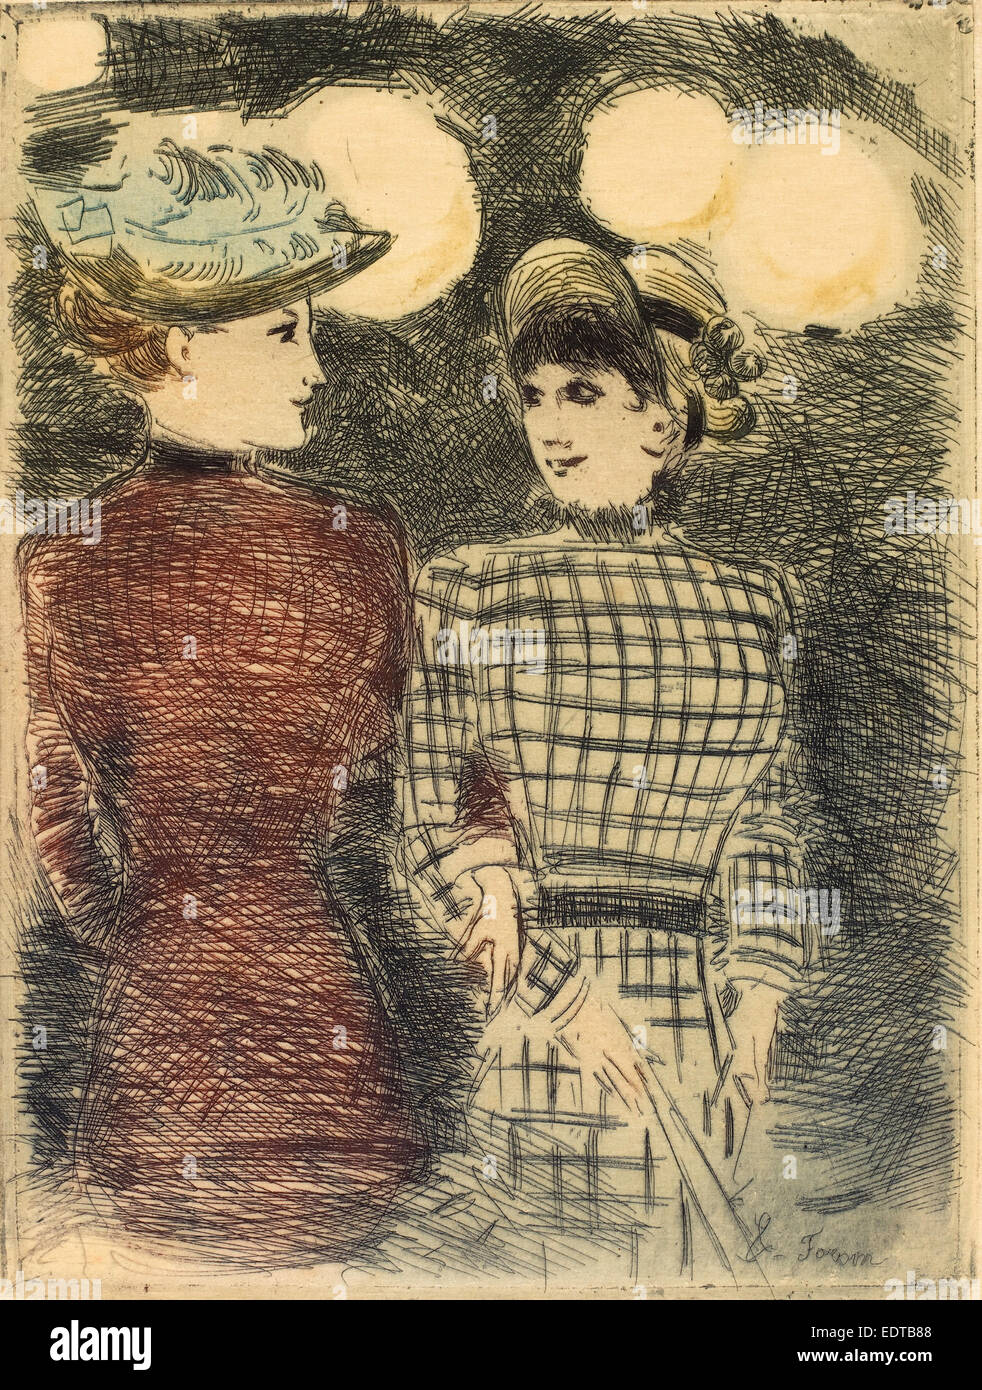 Jean-Louis Forain (French, 1852 - 1931), To Bullier's, c. 1876, color etching - Stock Image